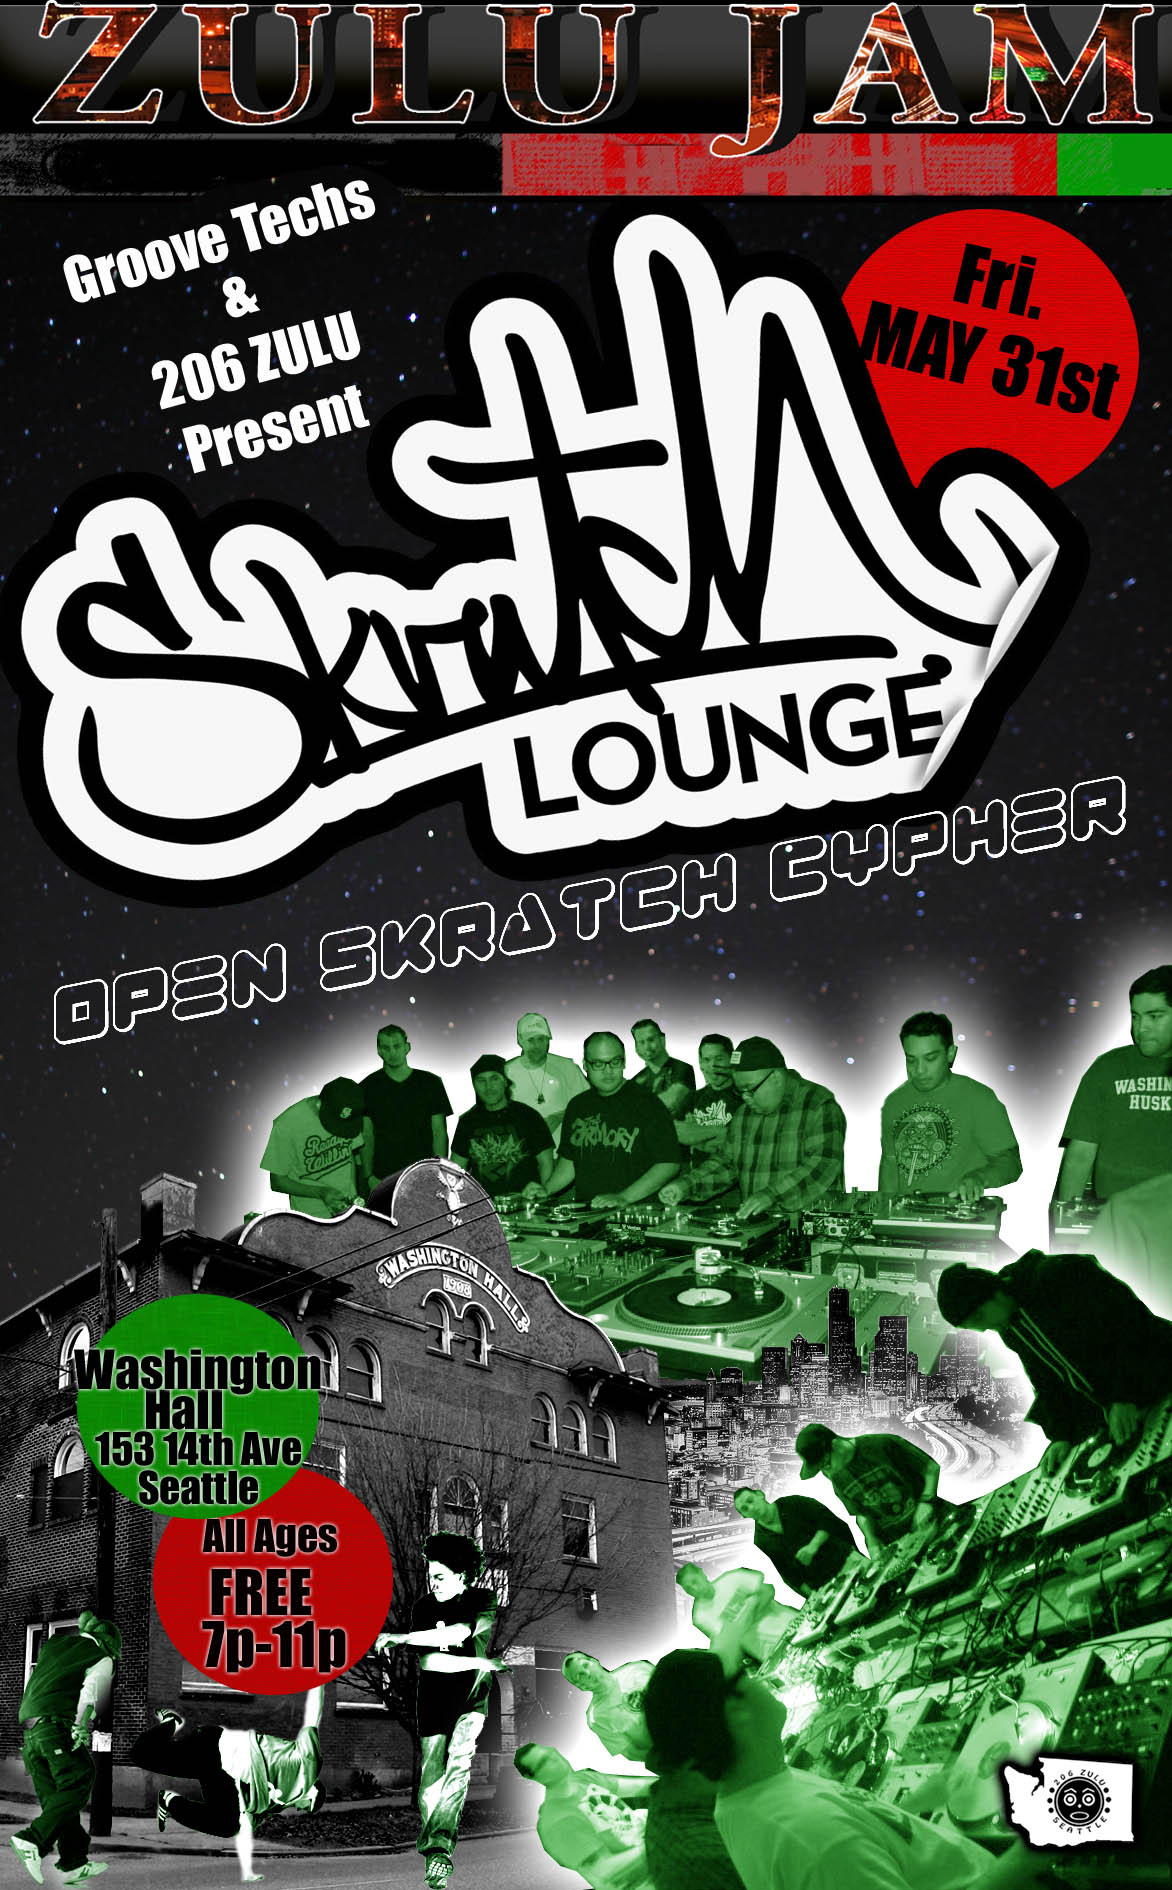 Skratch Lounge Zulu Jam may 2013_small.jpg